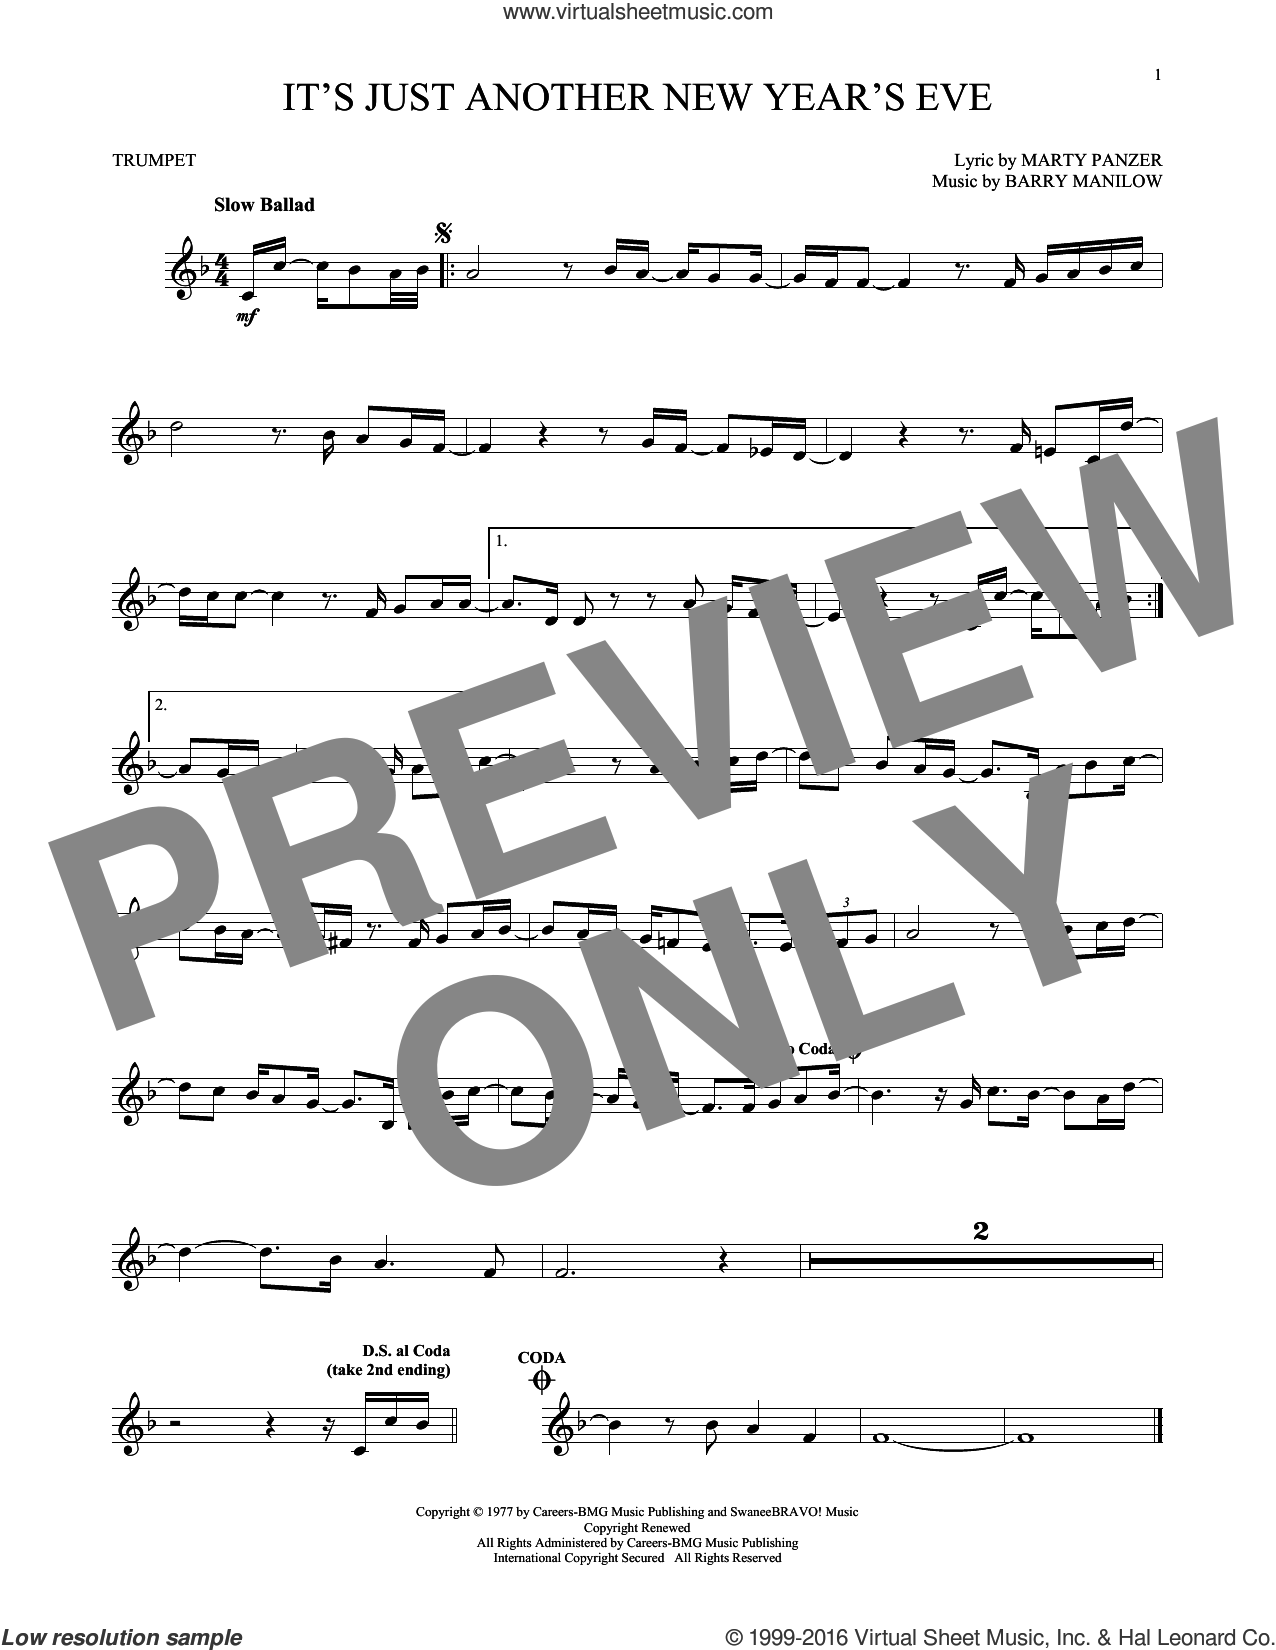 It's Just Another New Year's Eve sheet music for trumpet solo by Marty Panzer